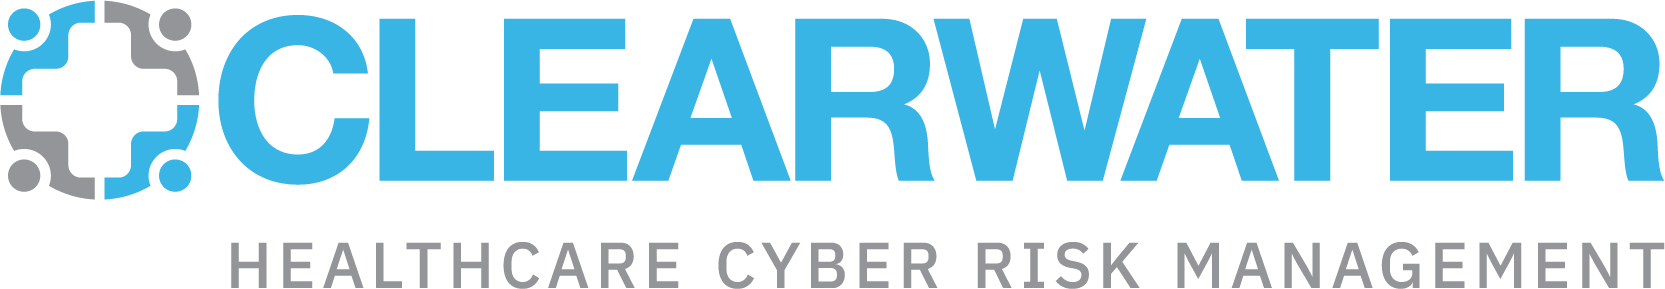 Manage Cyber Risk Right - Cyber Risk Management Solutions